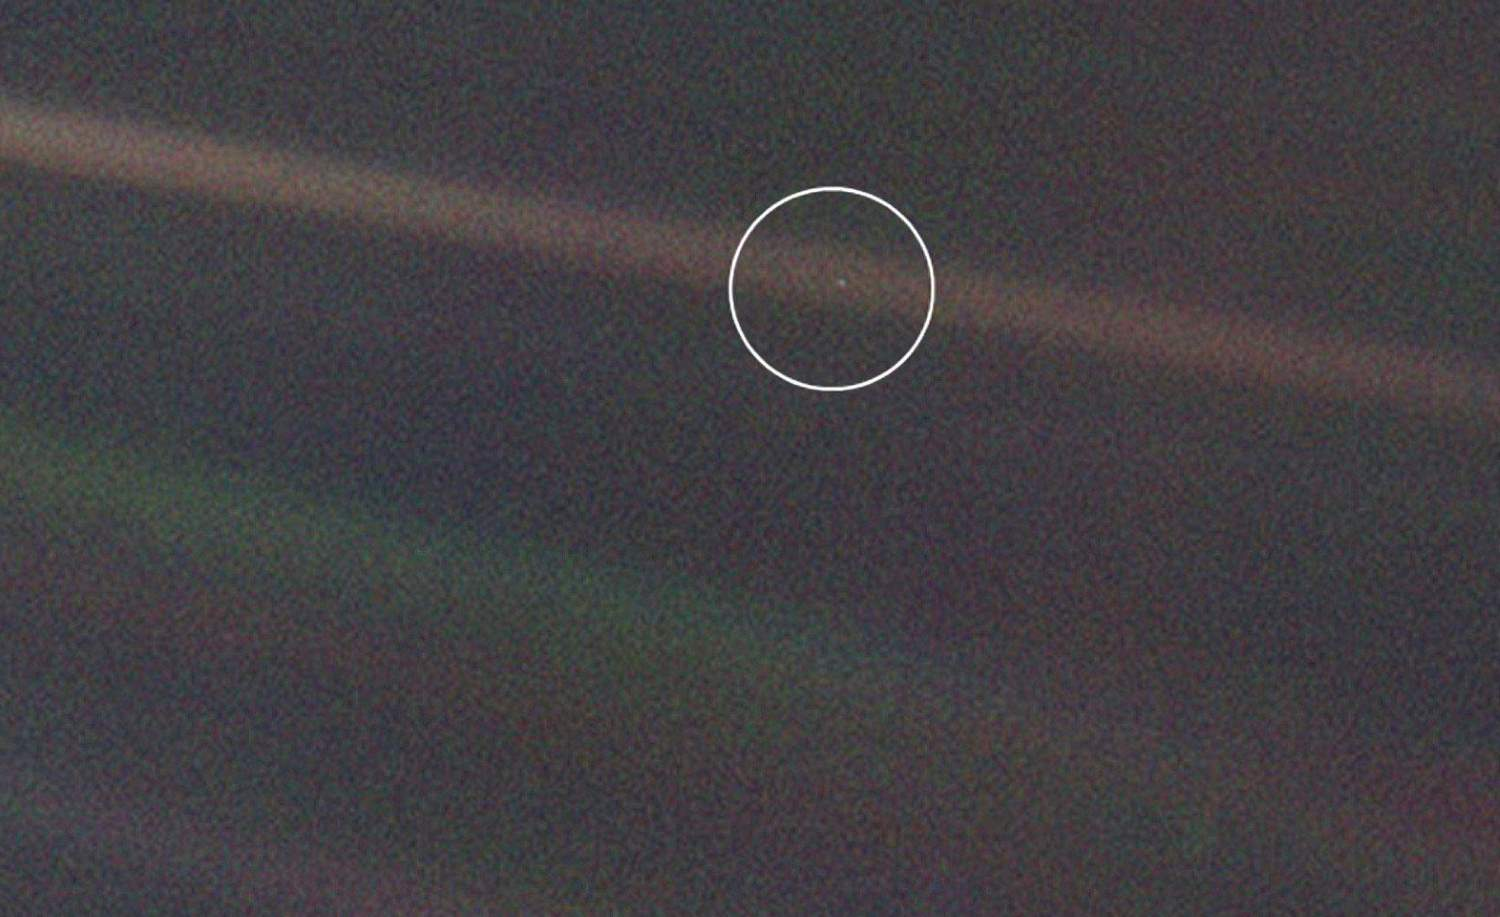 Most Iconic Photos of Earth from Space: Pale Blue Dot